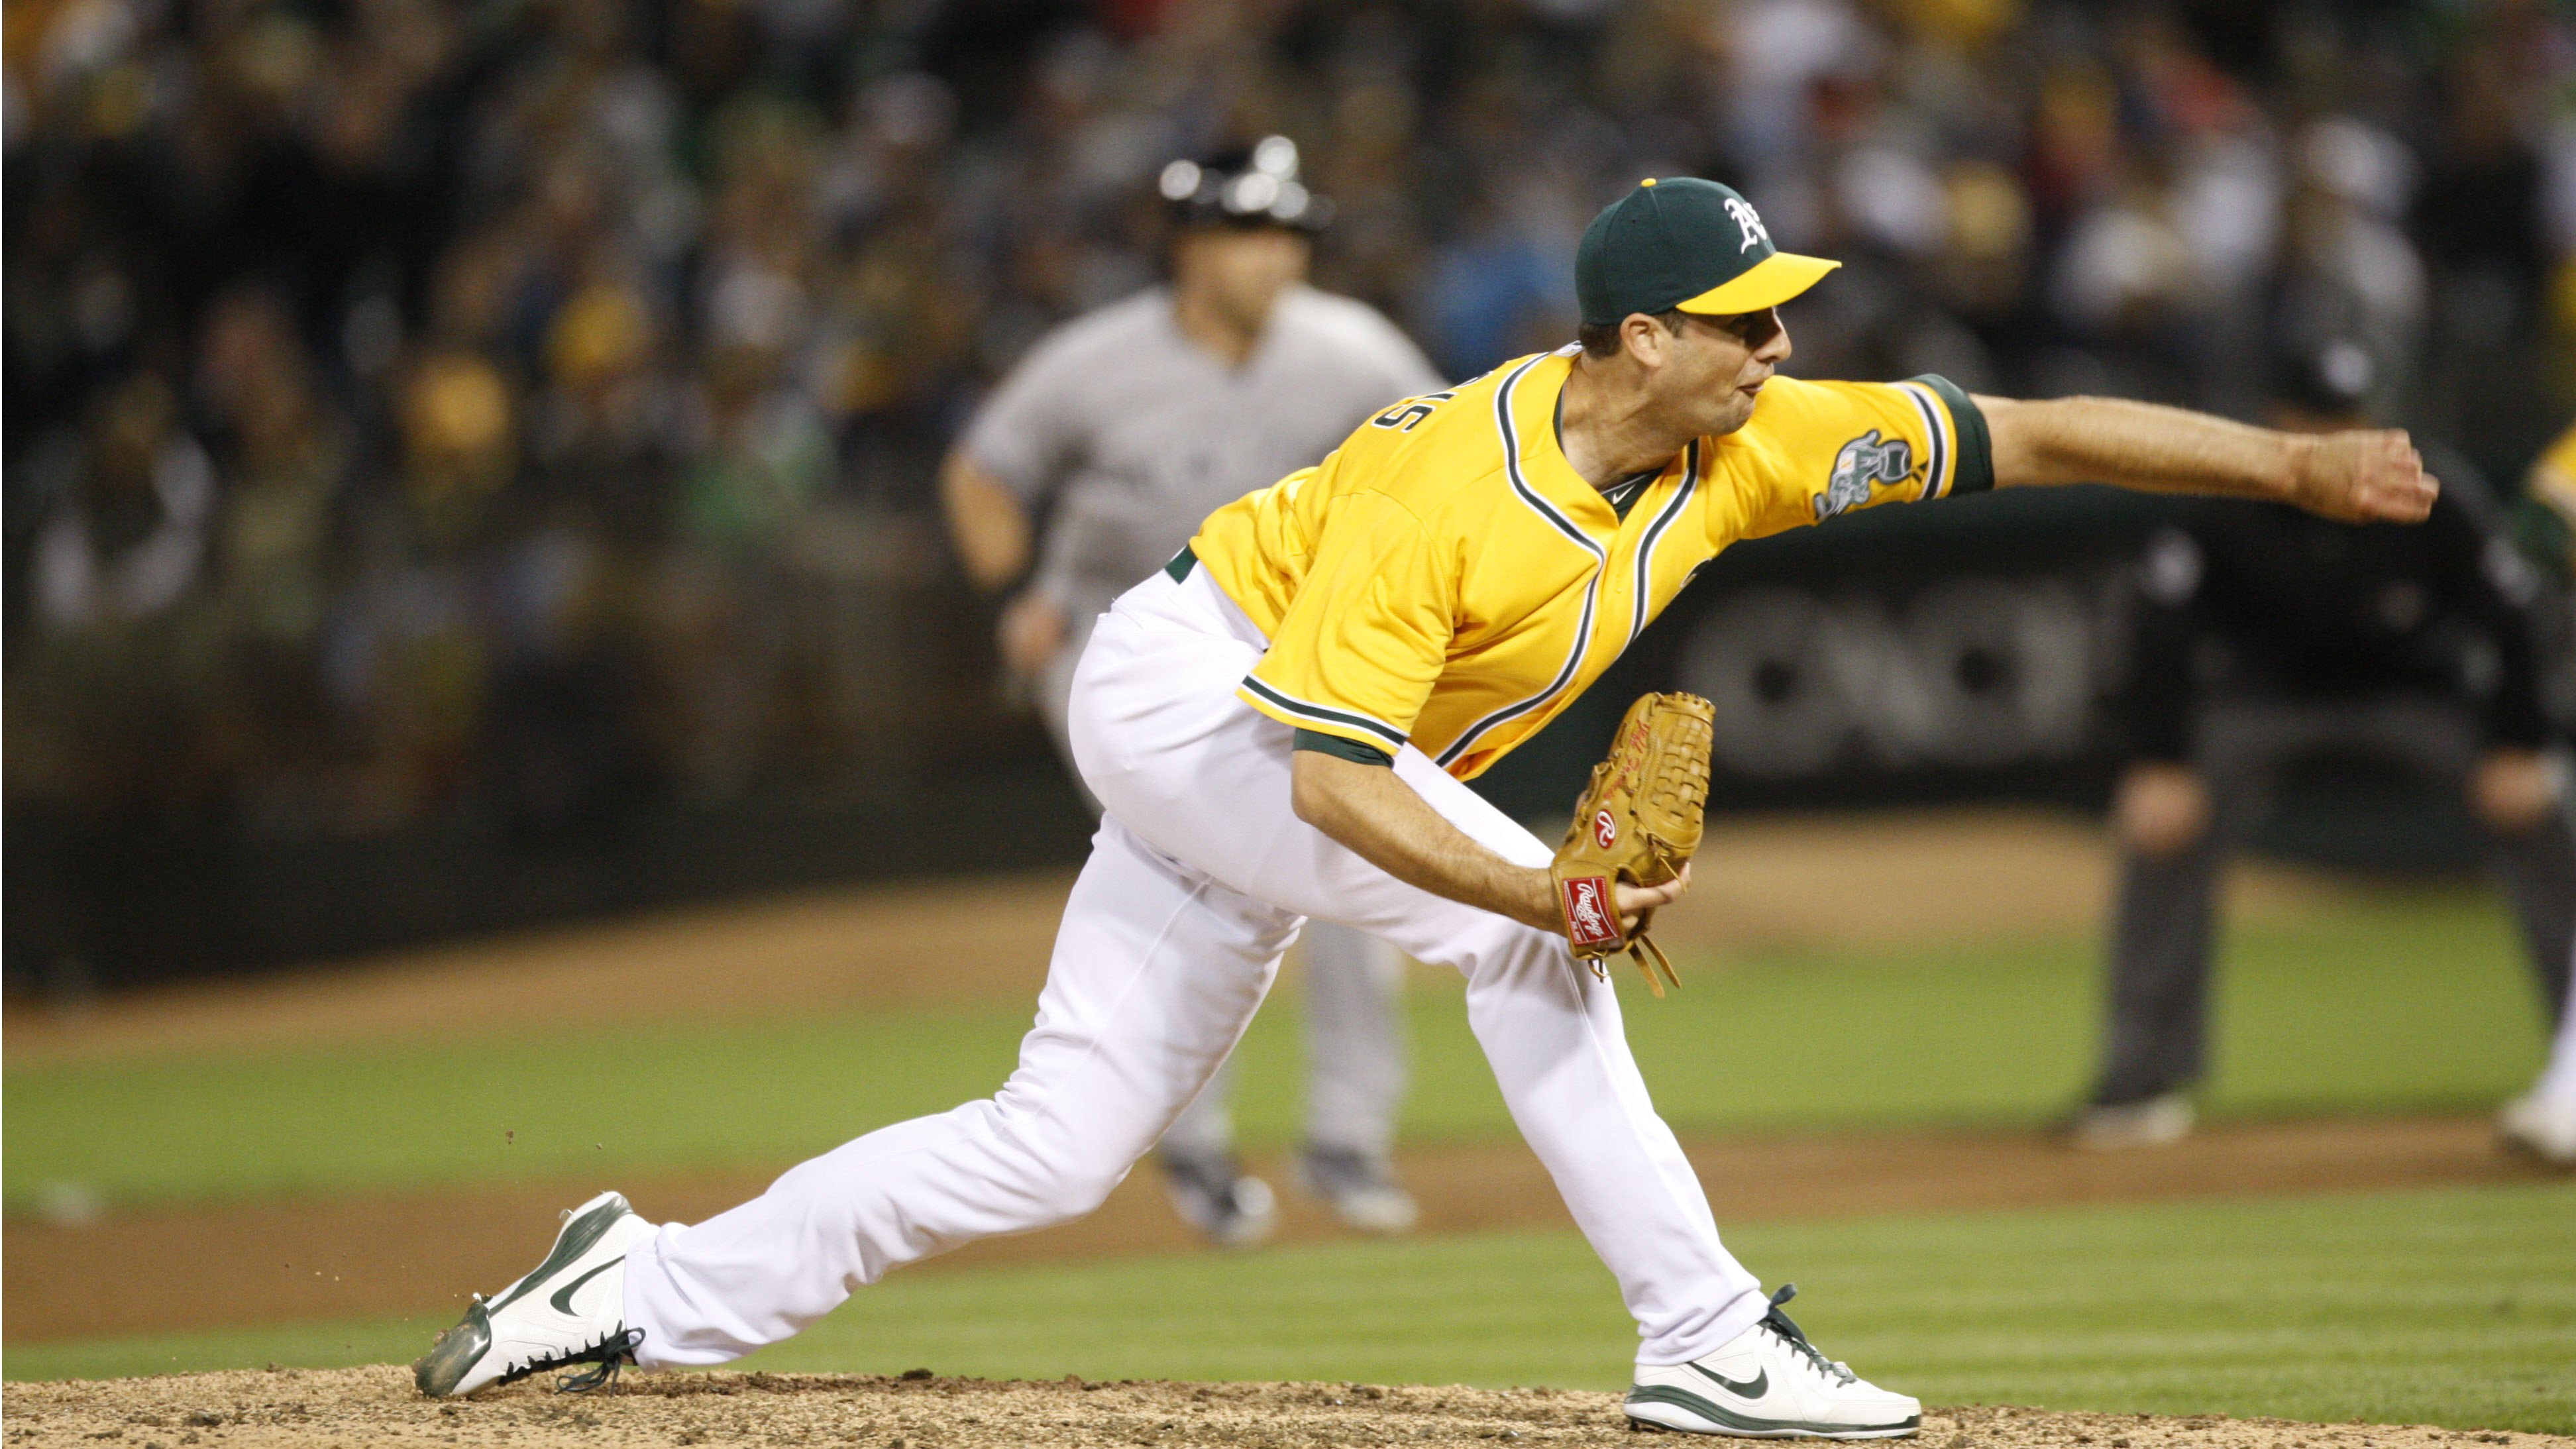 Jeff Francis moves on to his third team this season after being traded to the Yankees.